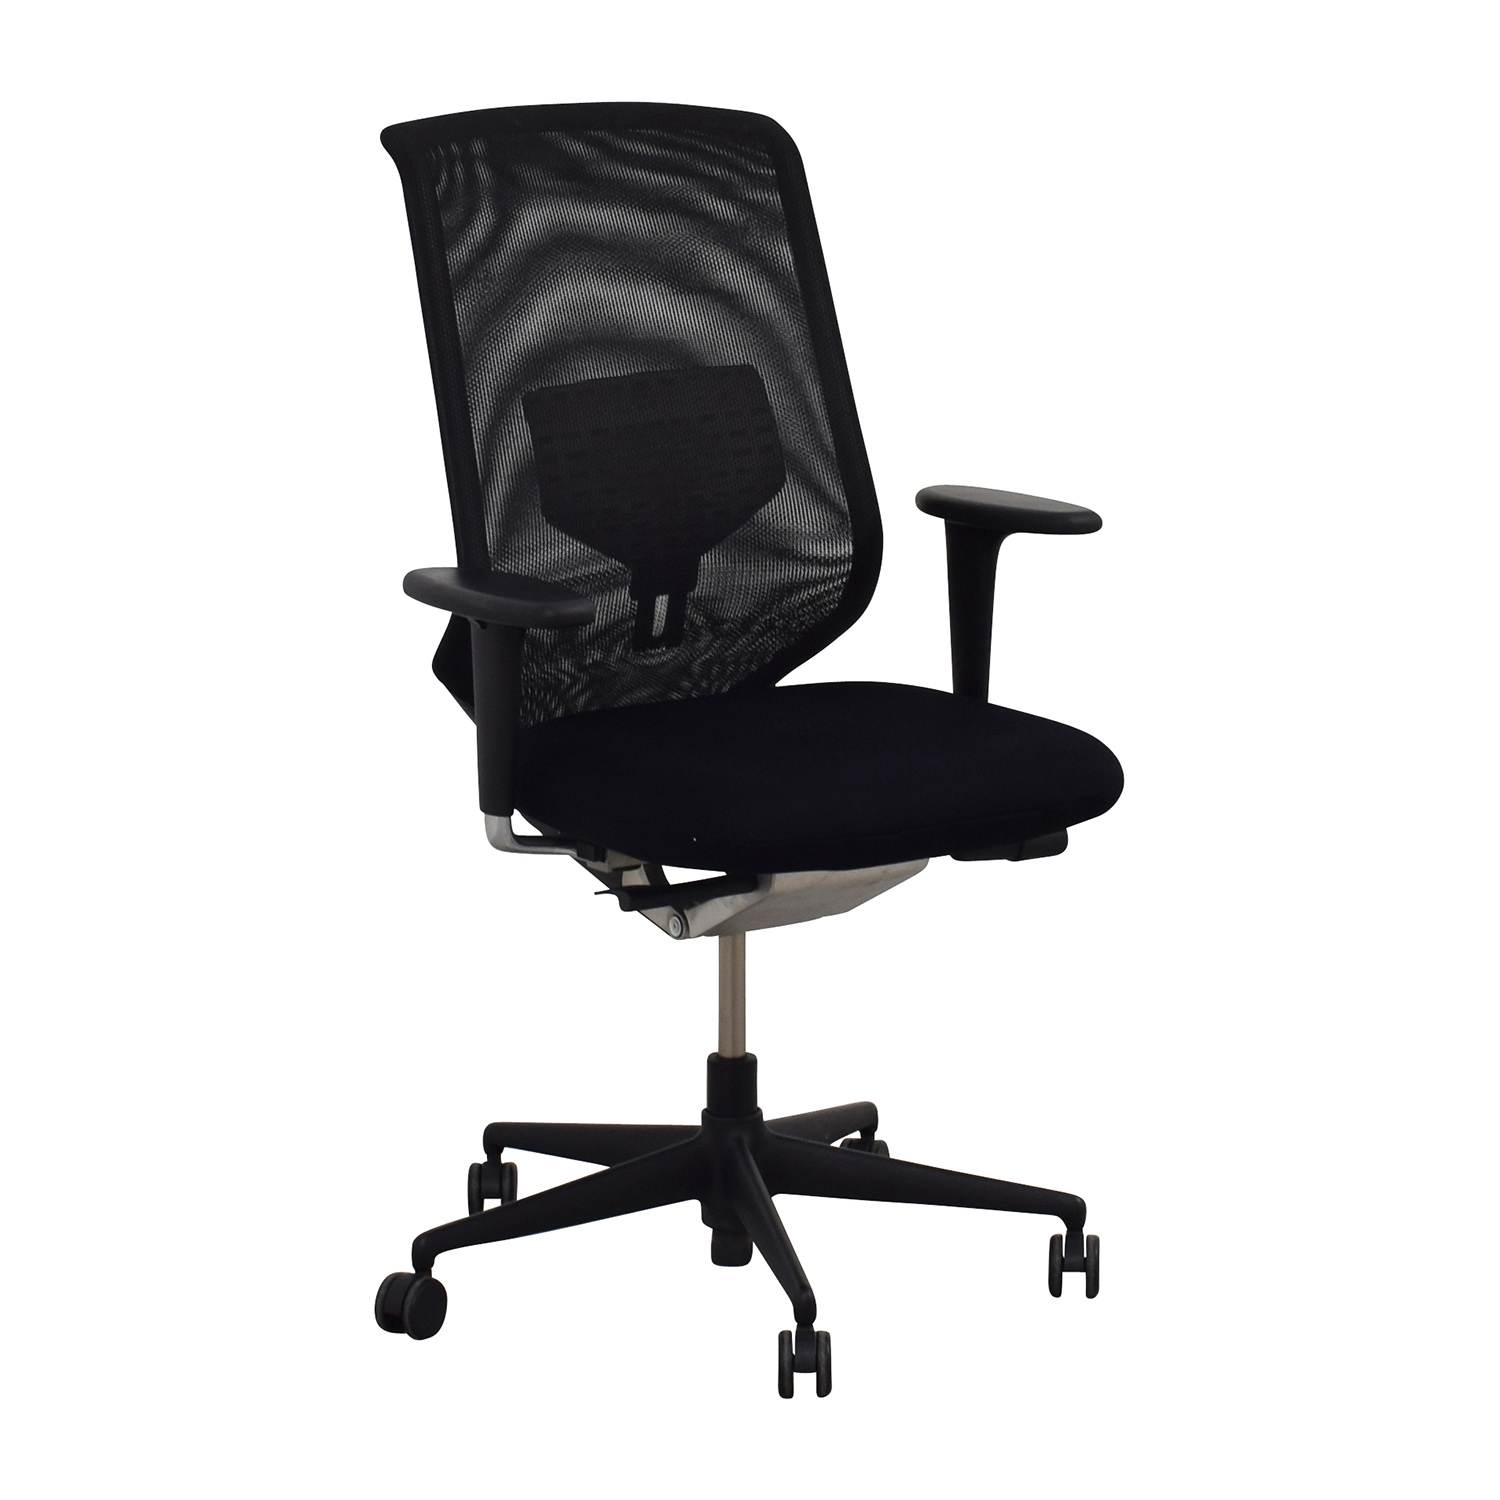 Vitra Office Chair 90 Off Vitra Vitra Meda Black Chair Chairs